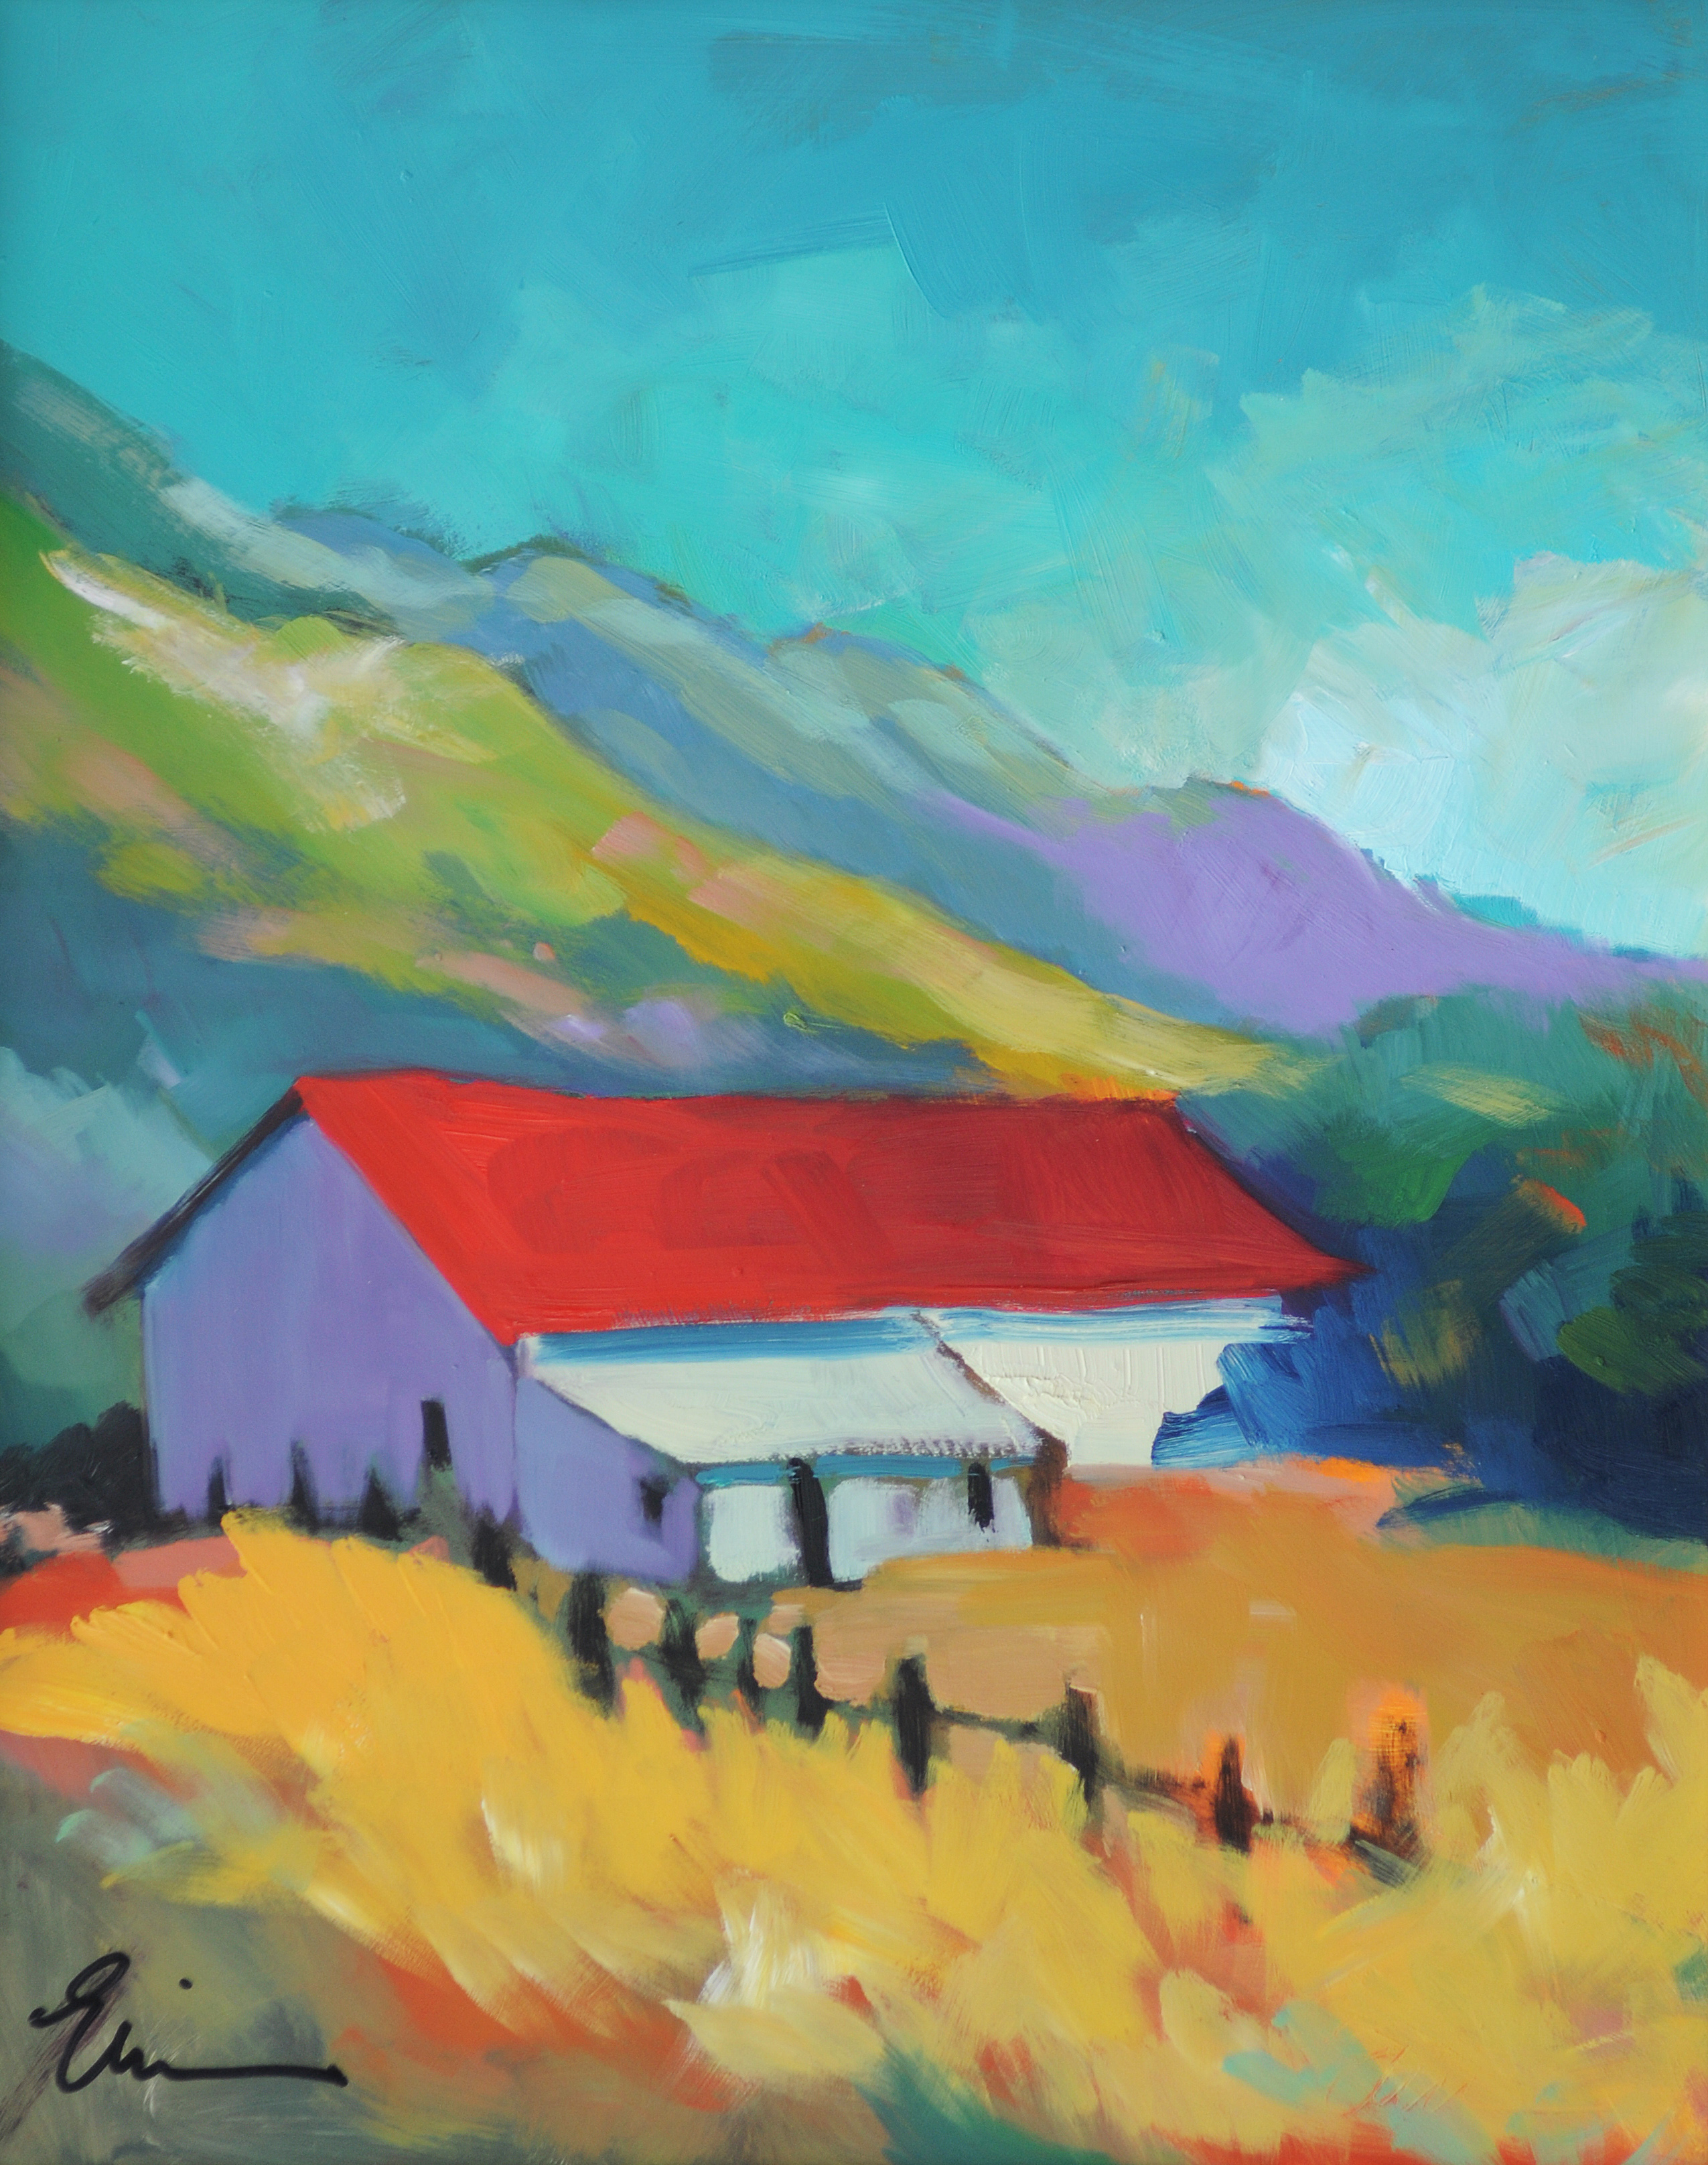 Barn at Molera, Summer by Erin Lee Gafill